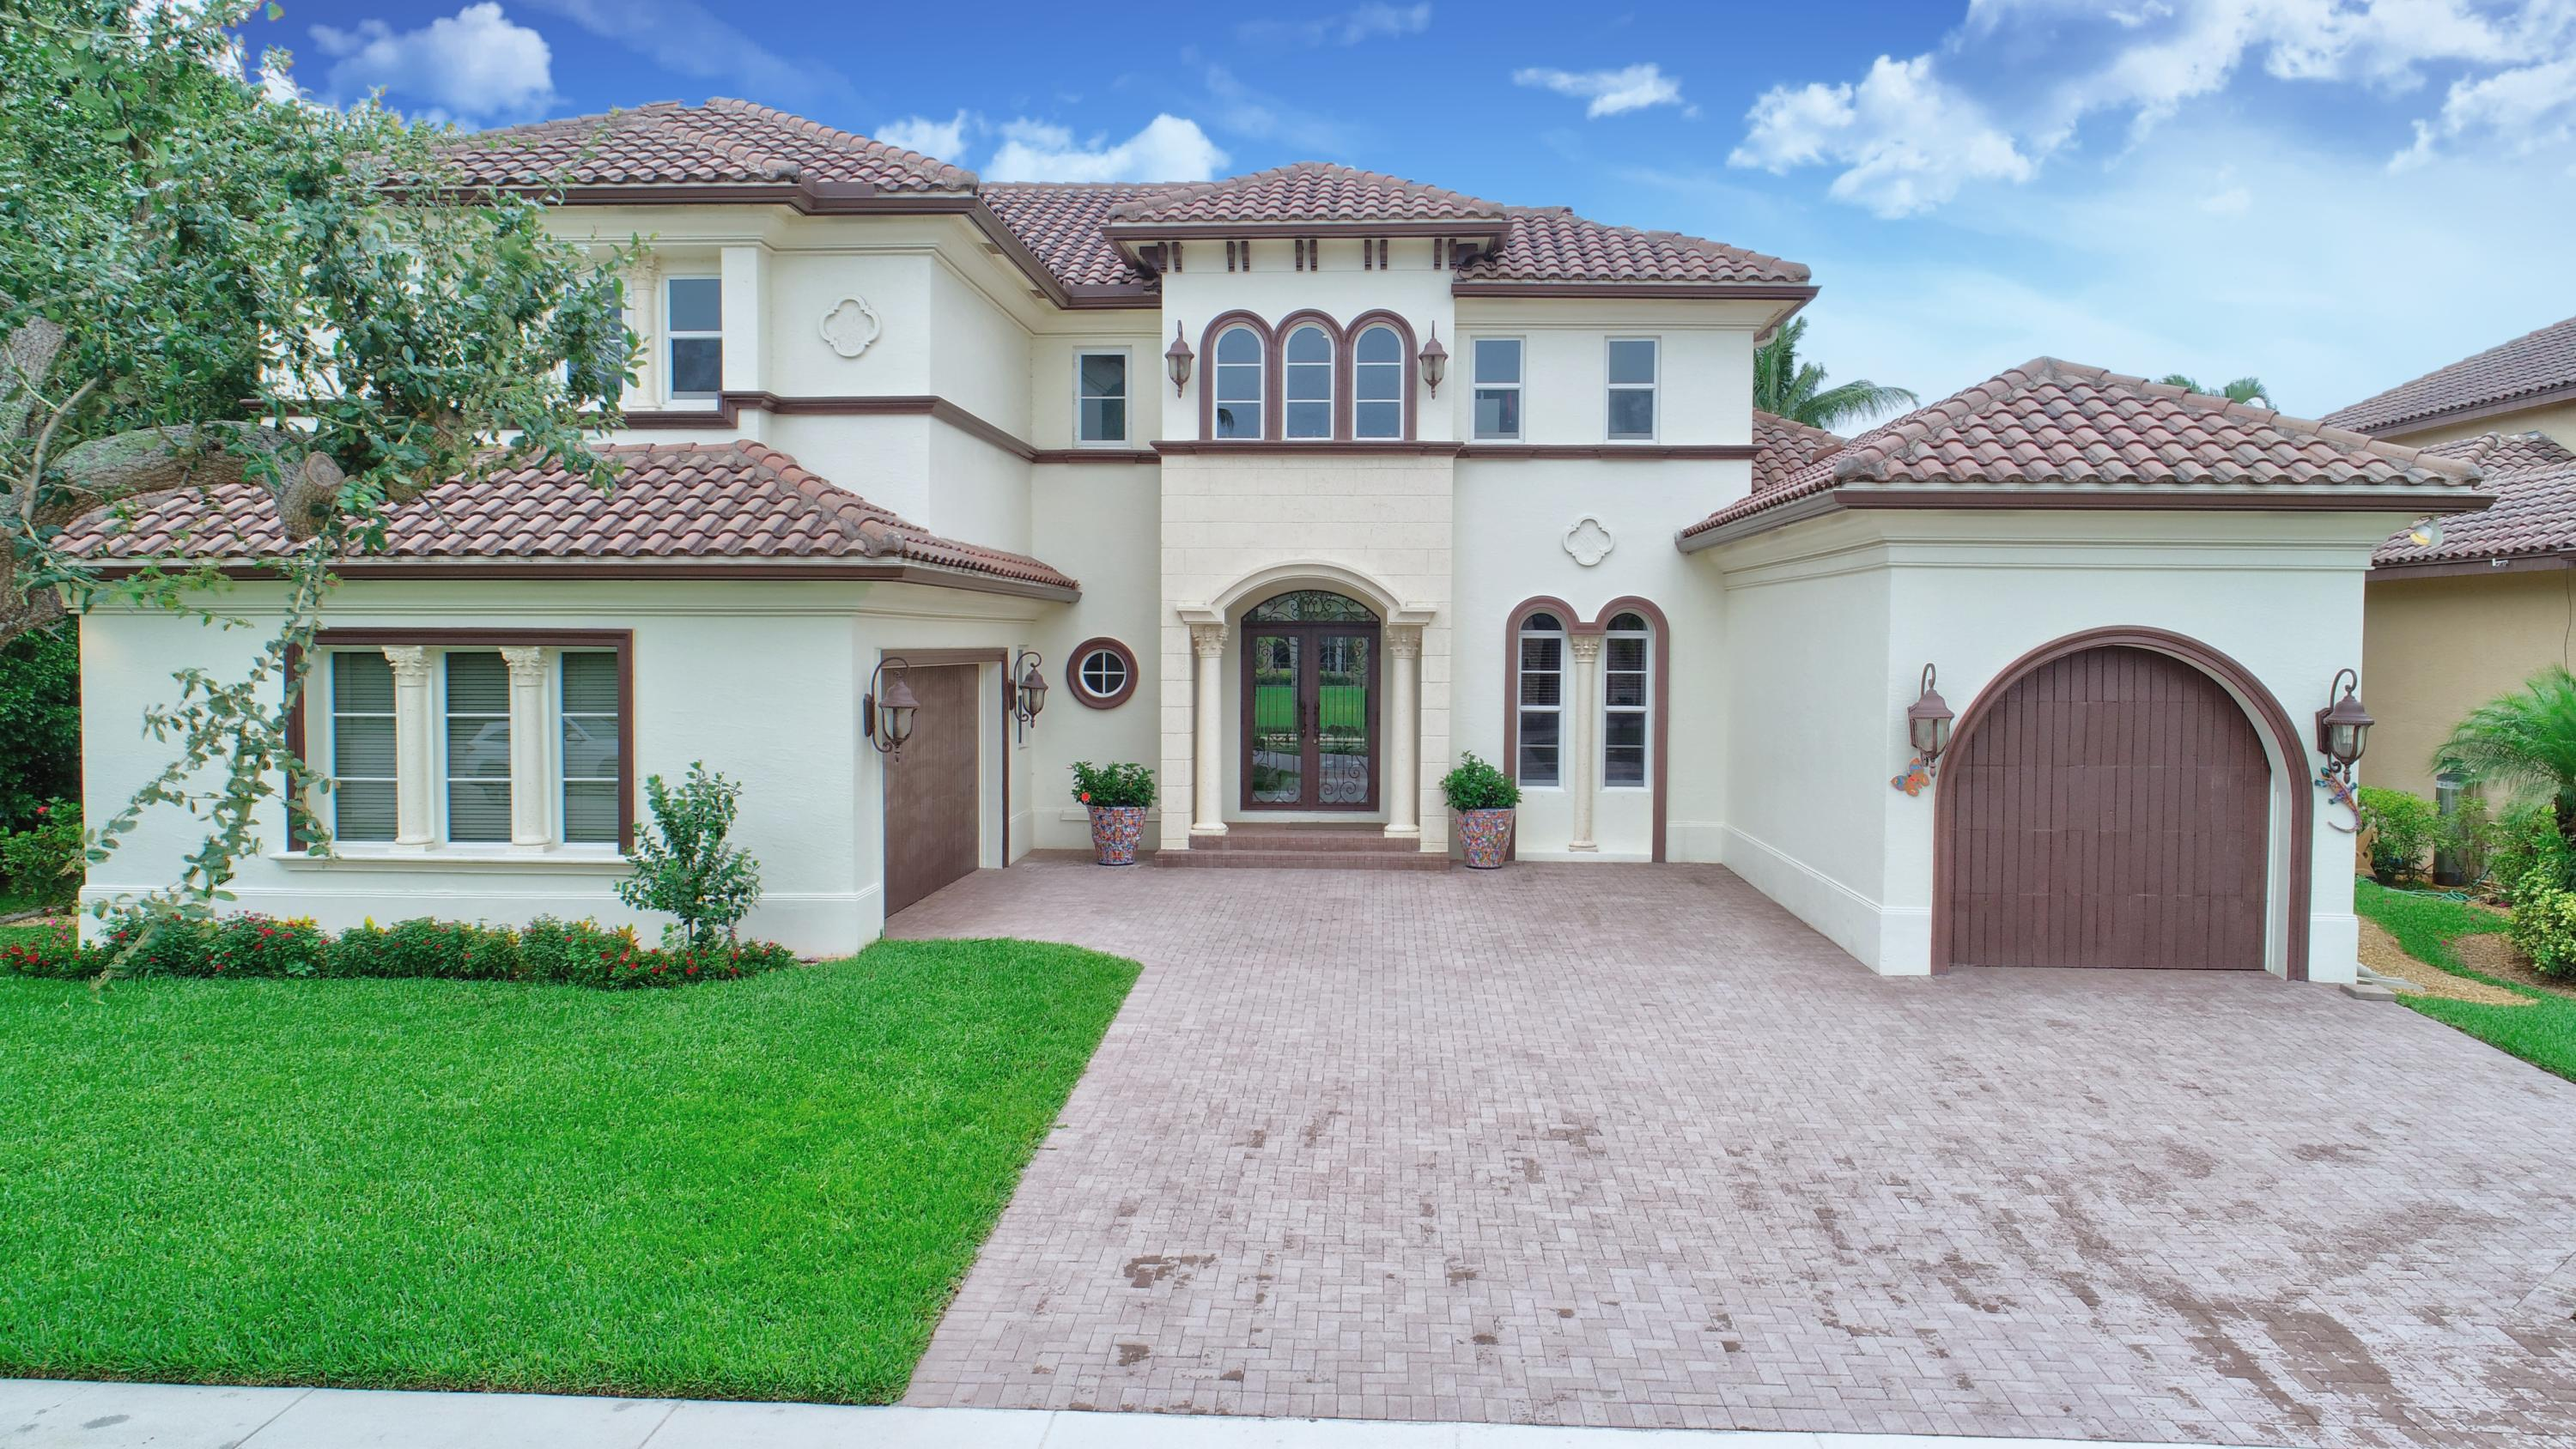 17529 Middlebrook Way, Boca Raton, Florida 33496, 5 Bedrooms Bedrooms, ,5.1 BathroomsBathrooms,Single family detached,For sale,Middlebrook,RX-10629542